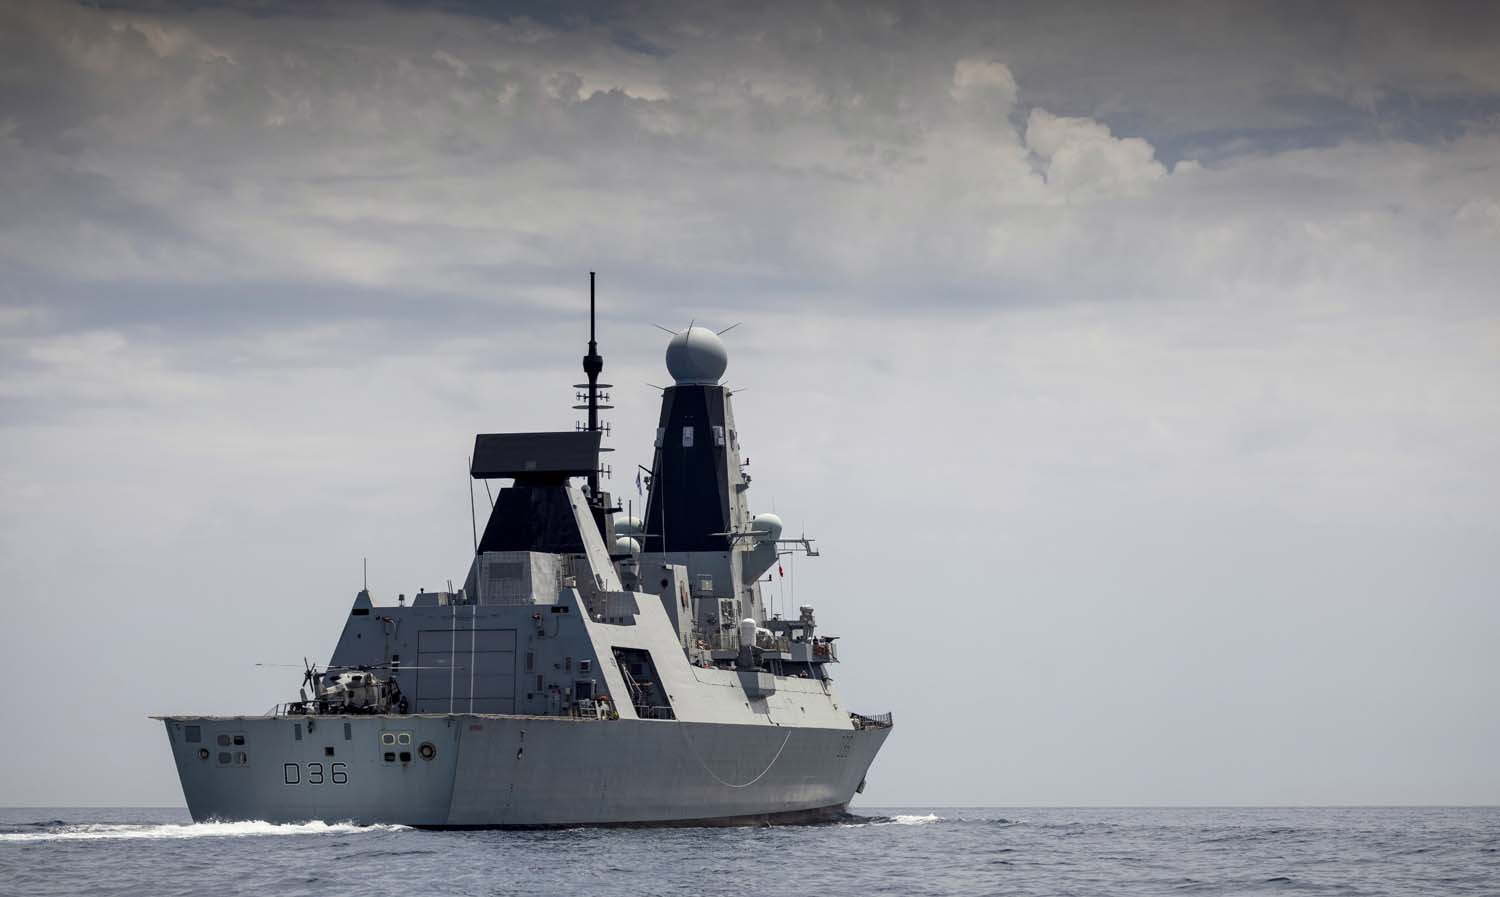 HMS Defender during their deployment with the Carrier Strike Group so far